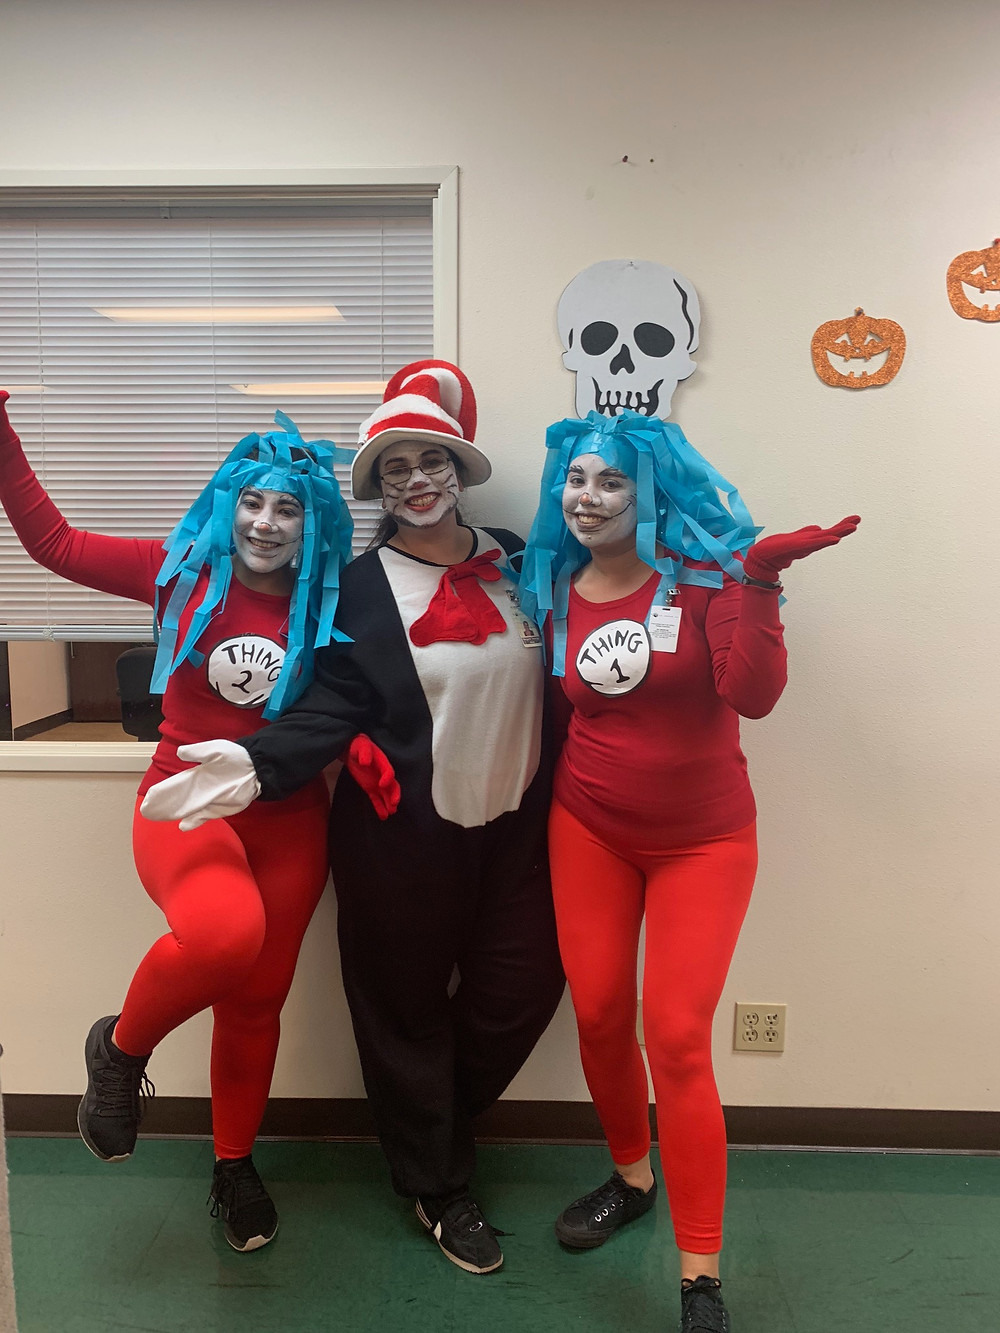 Sales Department - Cat in the Hat and Thing 1 & Thing 2